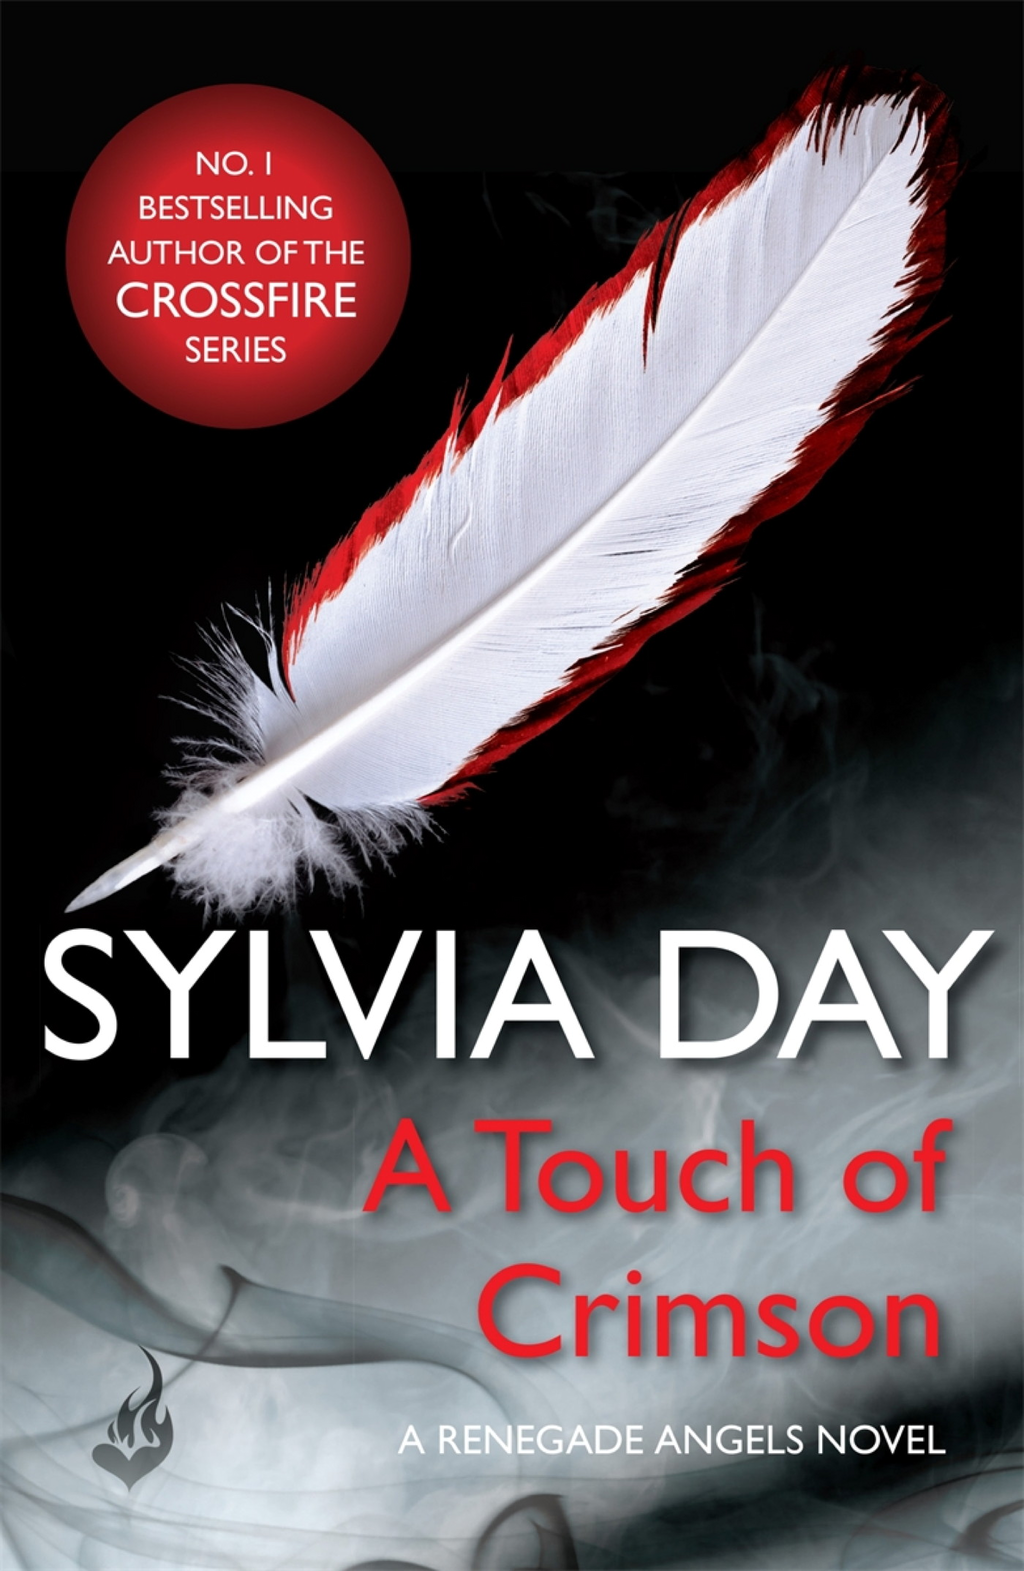 A Touch of Crimson (A Renegade Angels Novel)